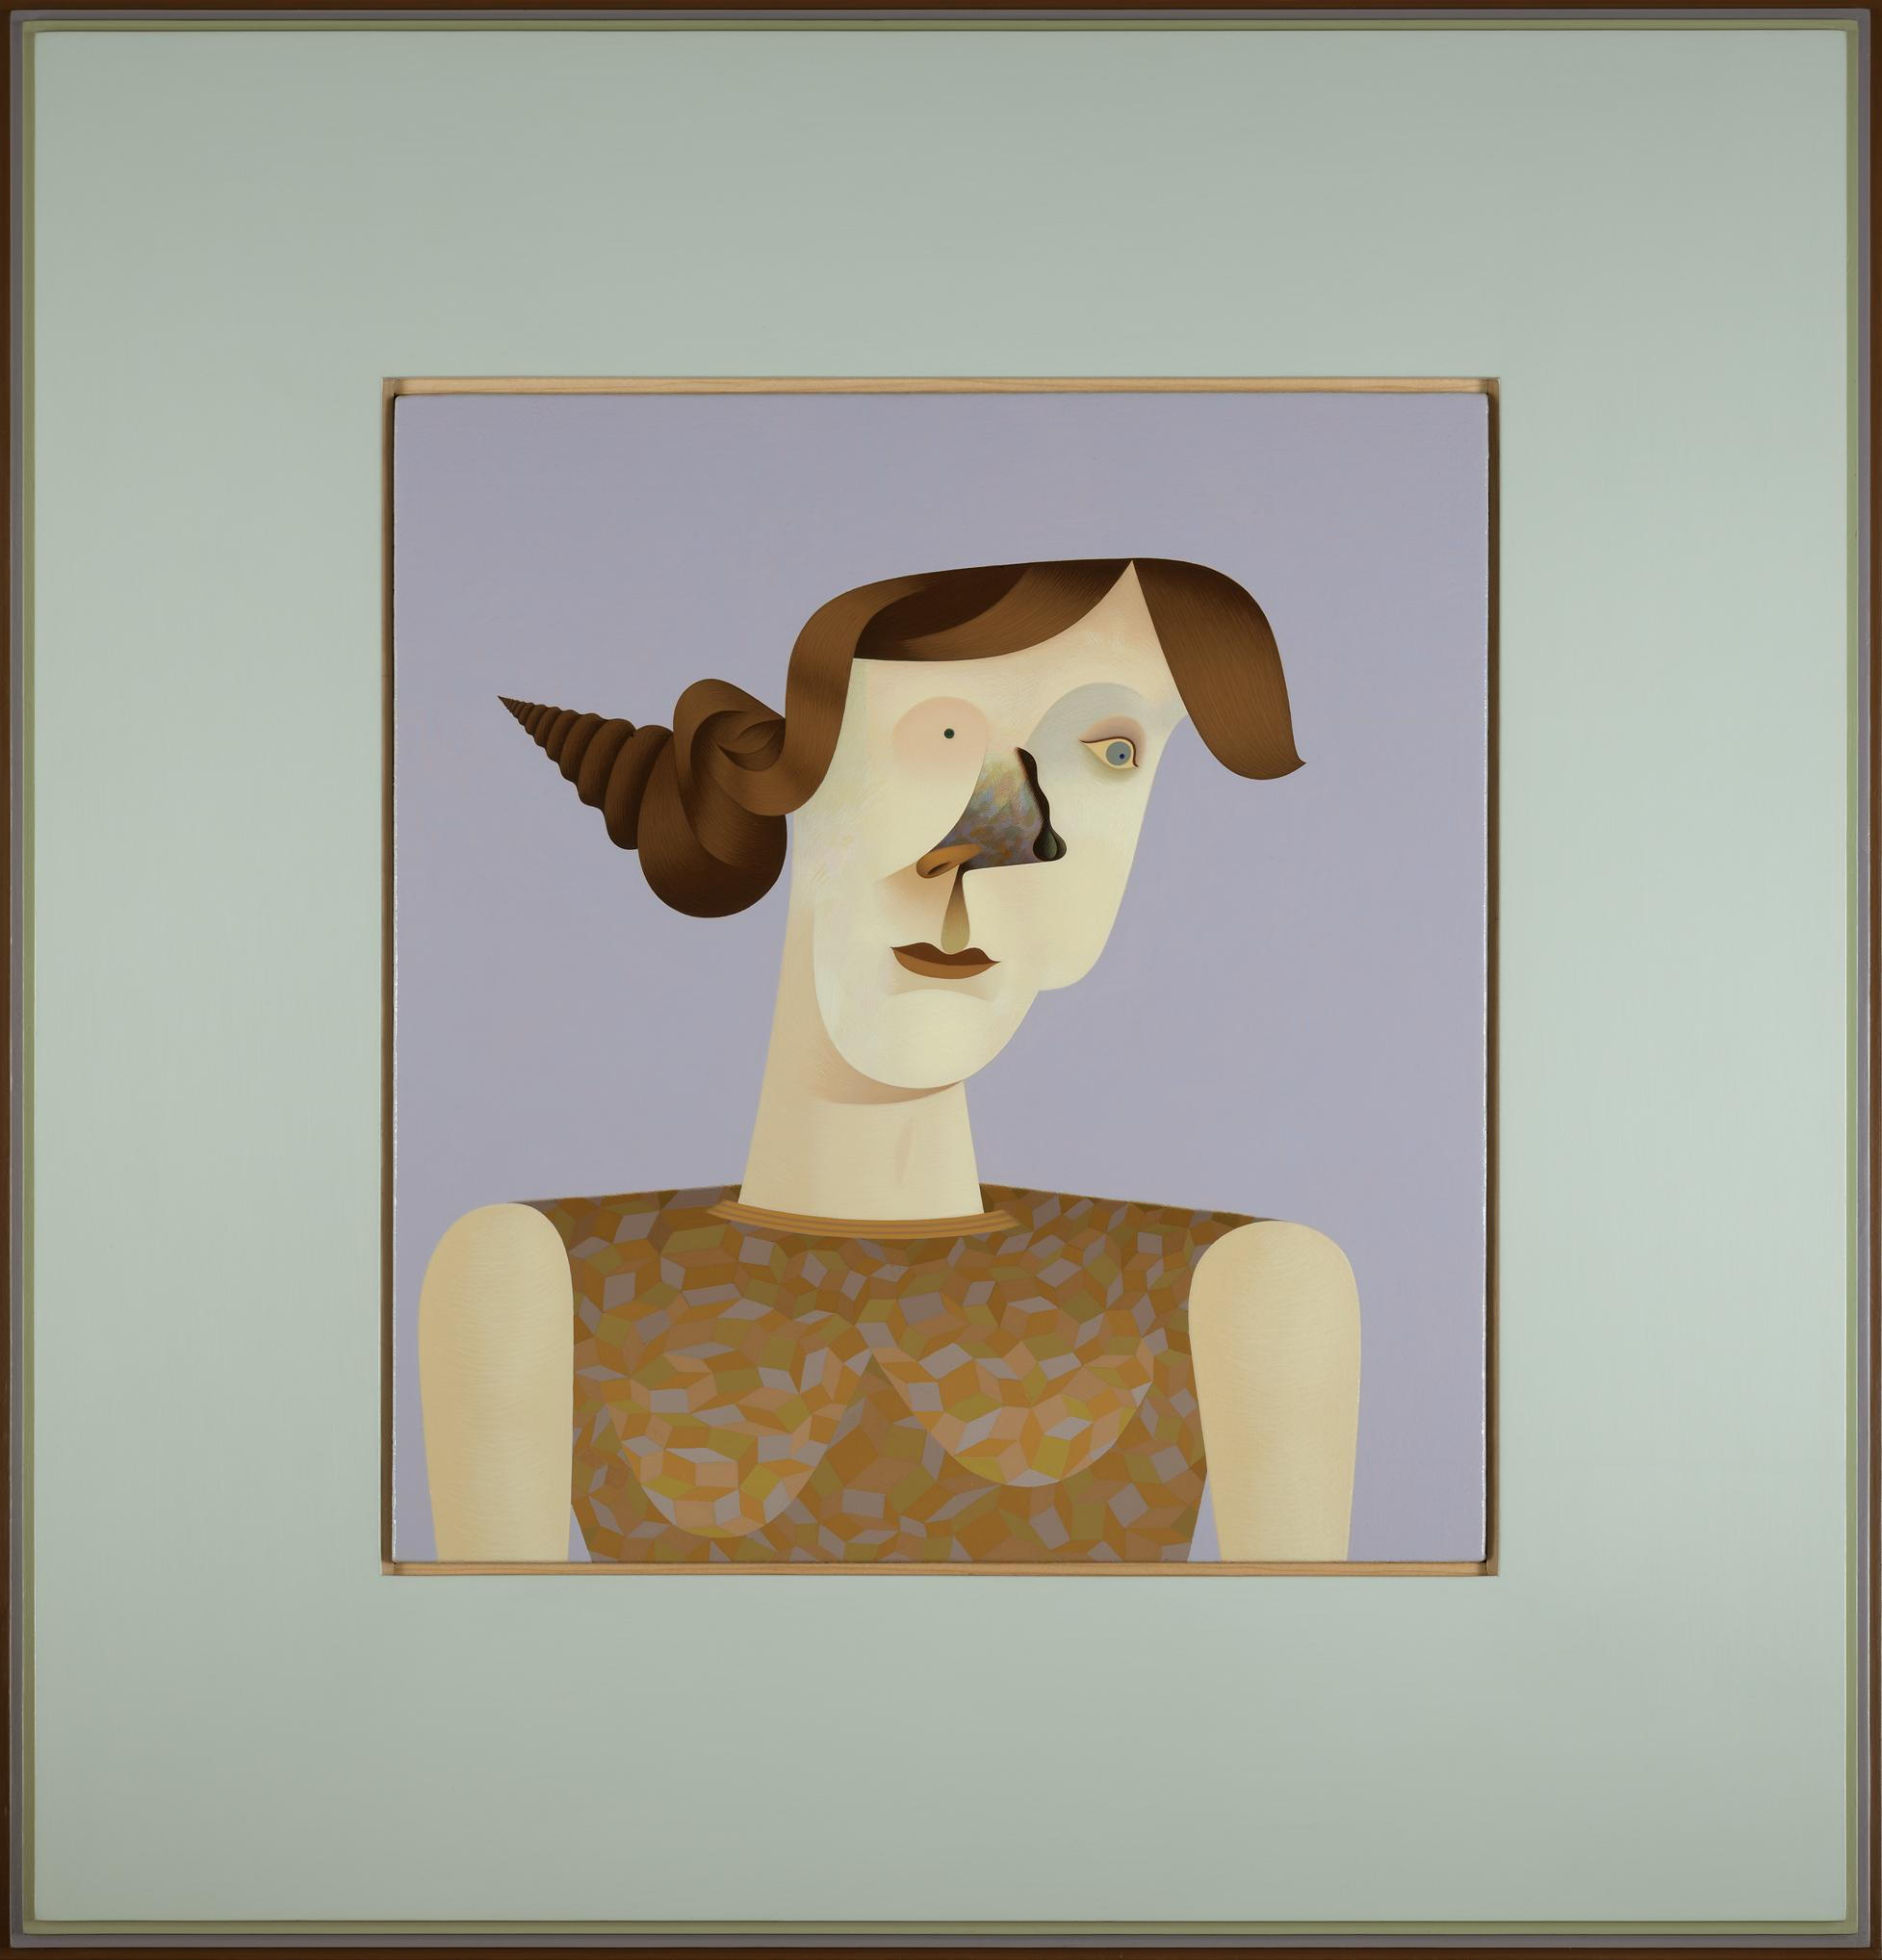 In this painted portrait of a light-skinned woman, one eye is a black dot, a black squiggly line forms the ridge of a dark patterned nose, and her brown hair is done up in a bun that twists to a point, reminiscent of a conch shell.